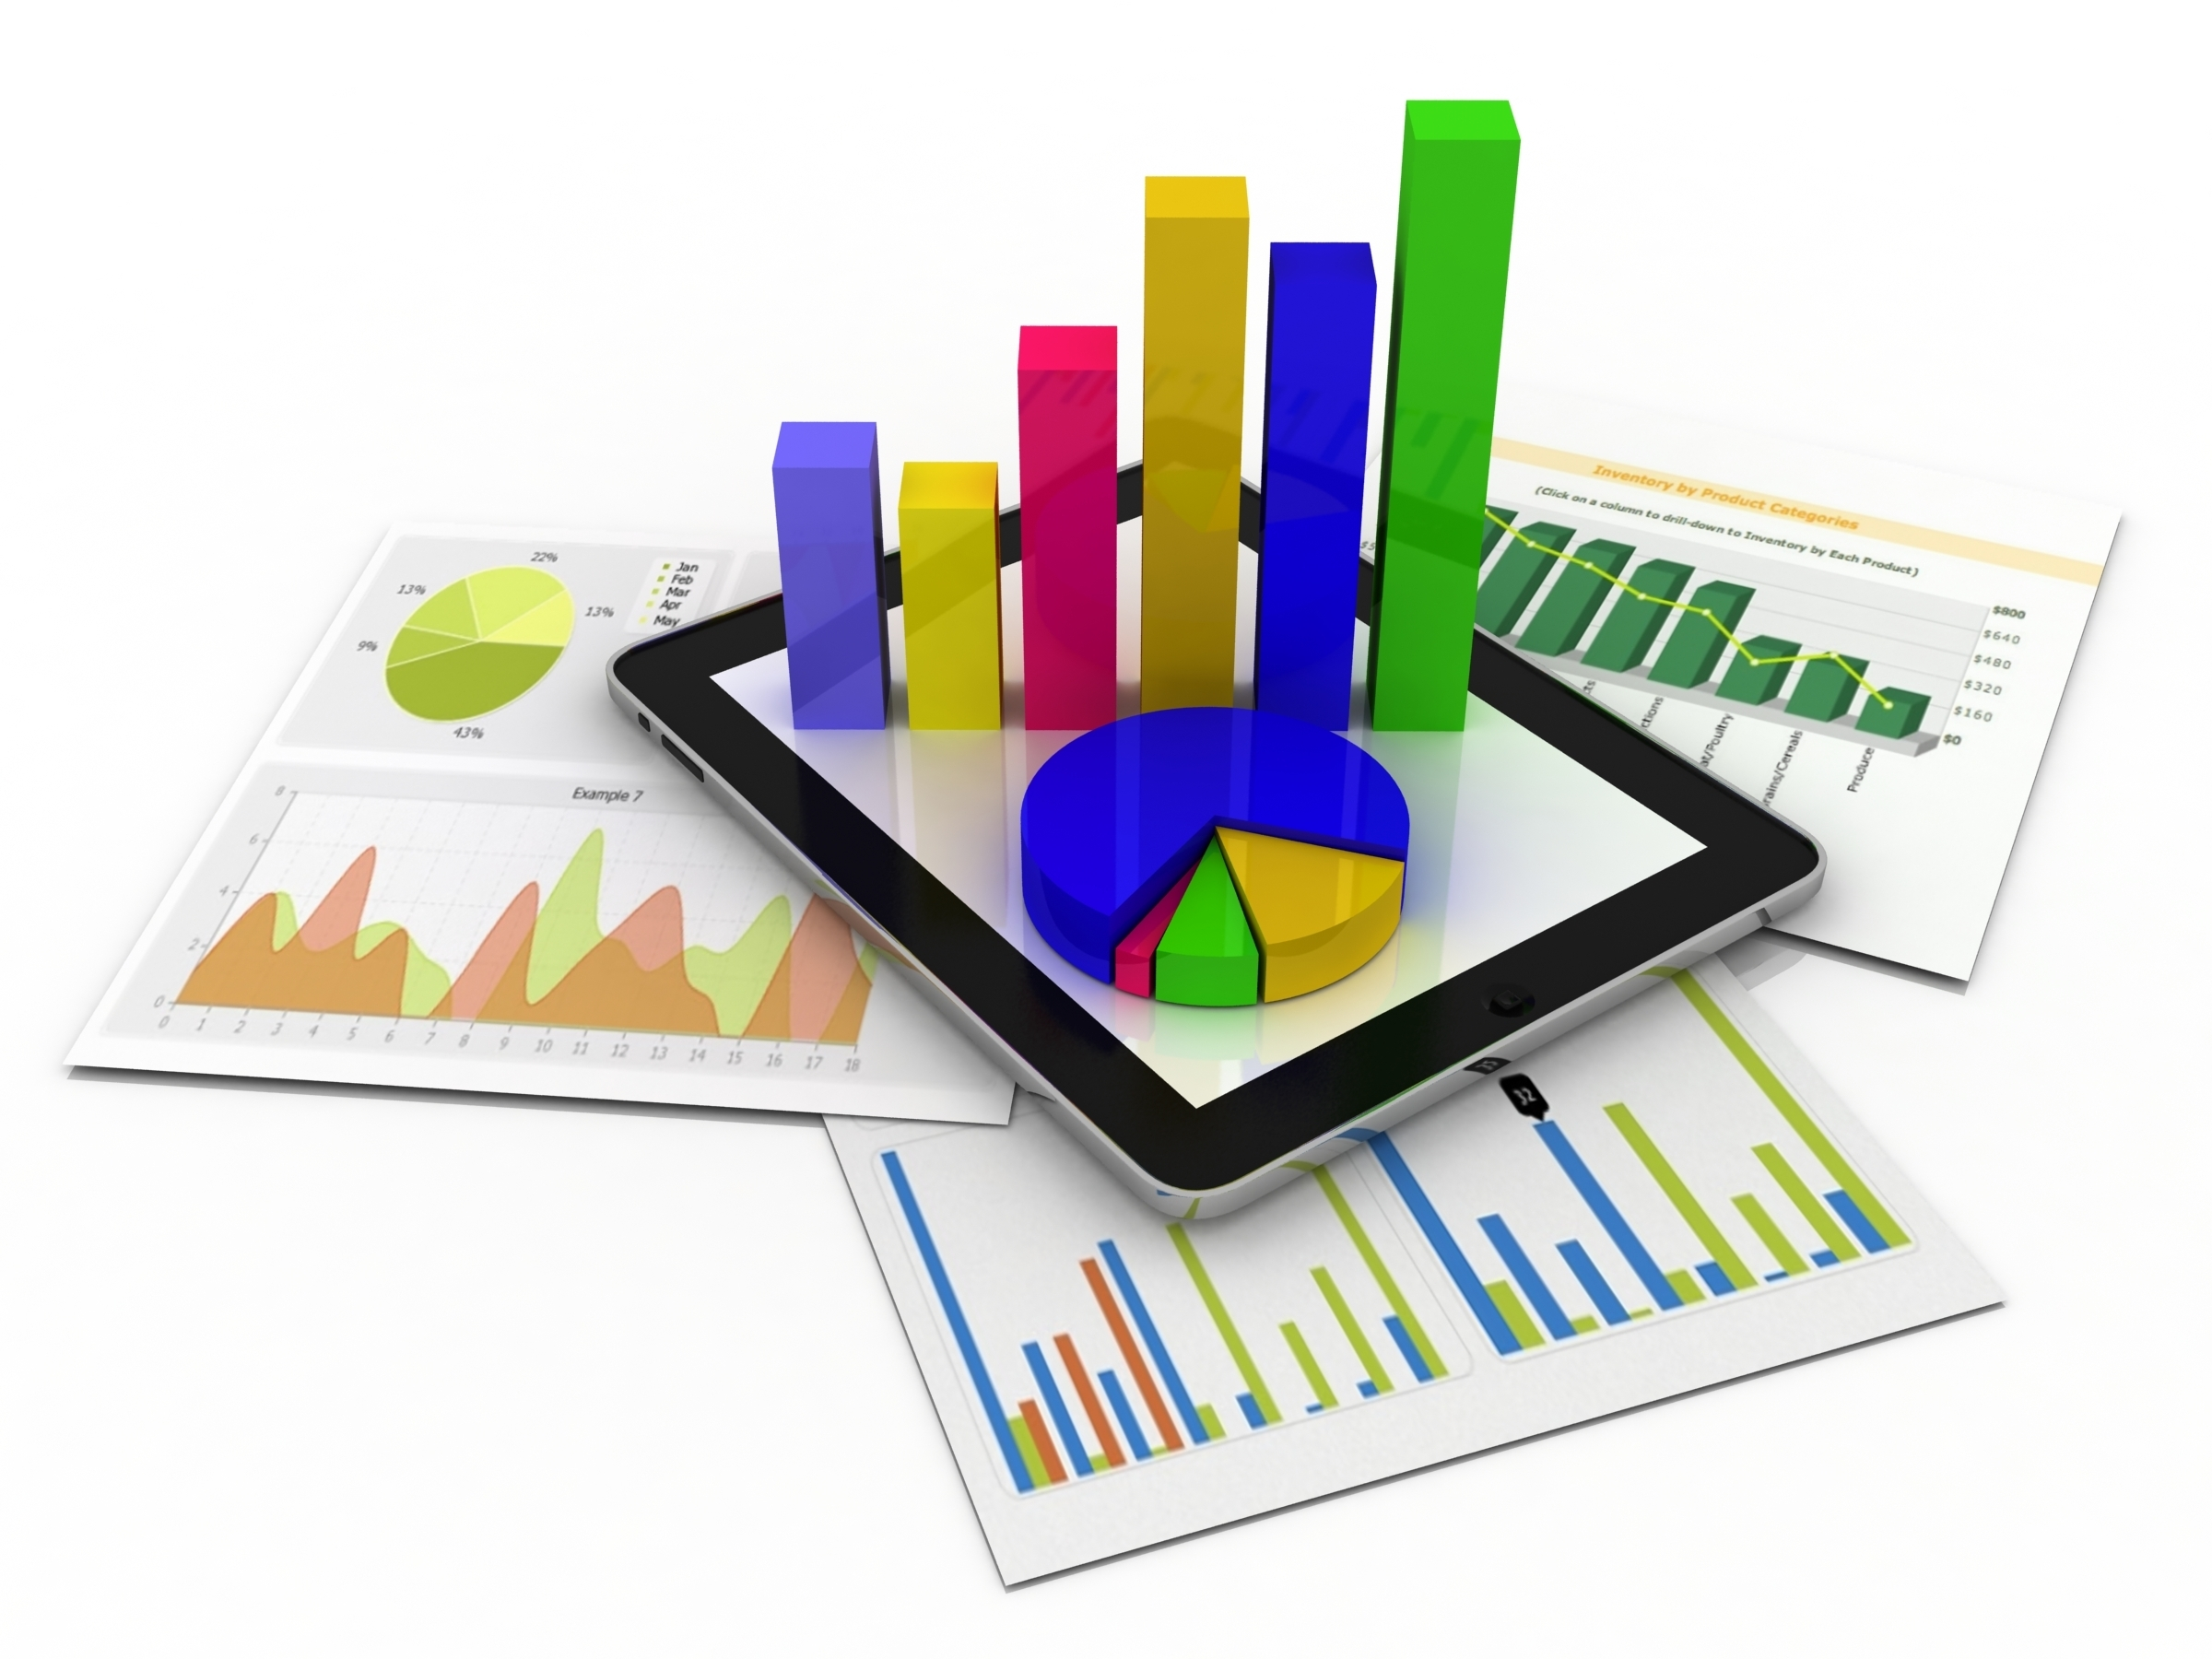 Significance of Business Analytics